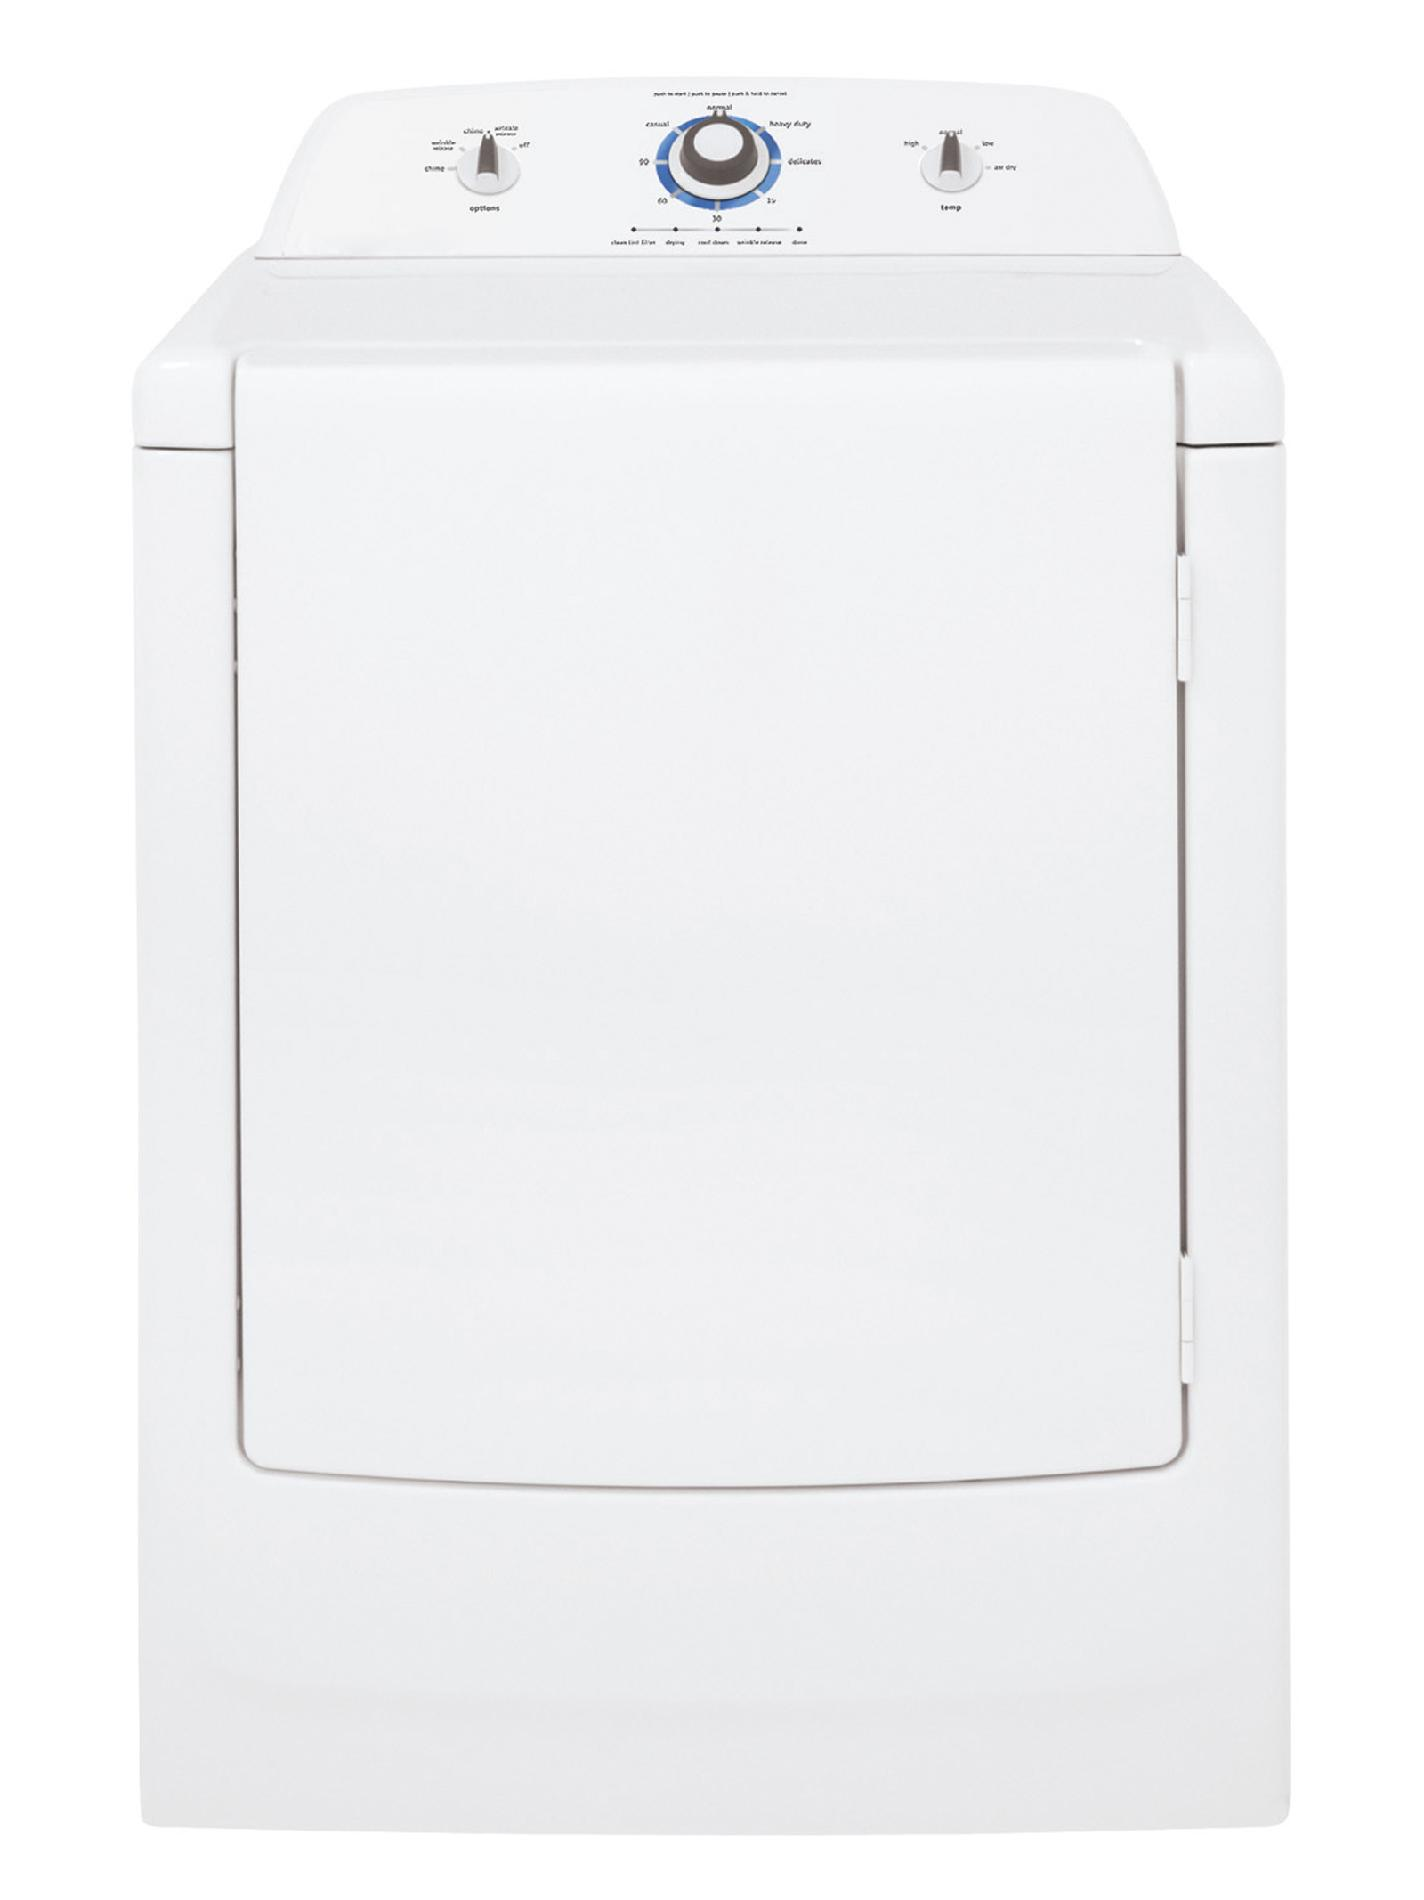 Frigidaire-7-0-cu-ft-Gas-Dryer-w-Wrinkle-Release-White